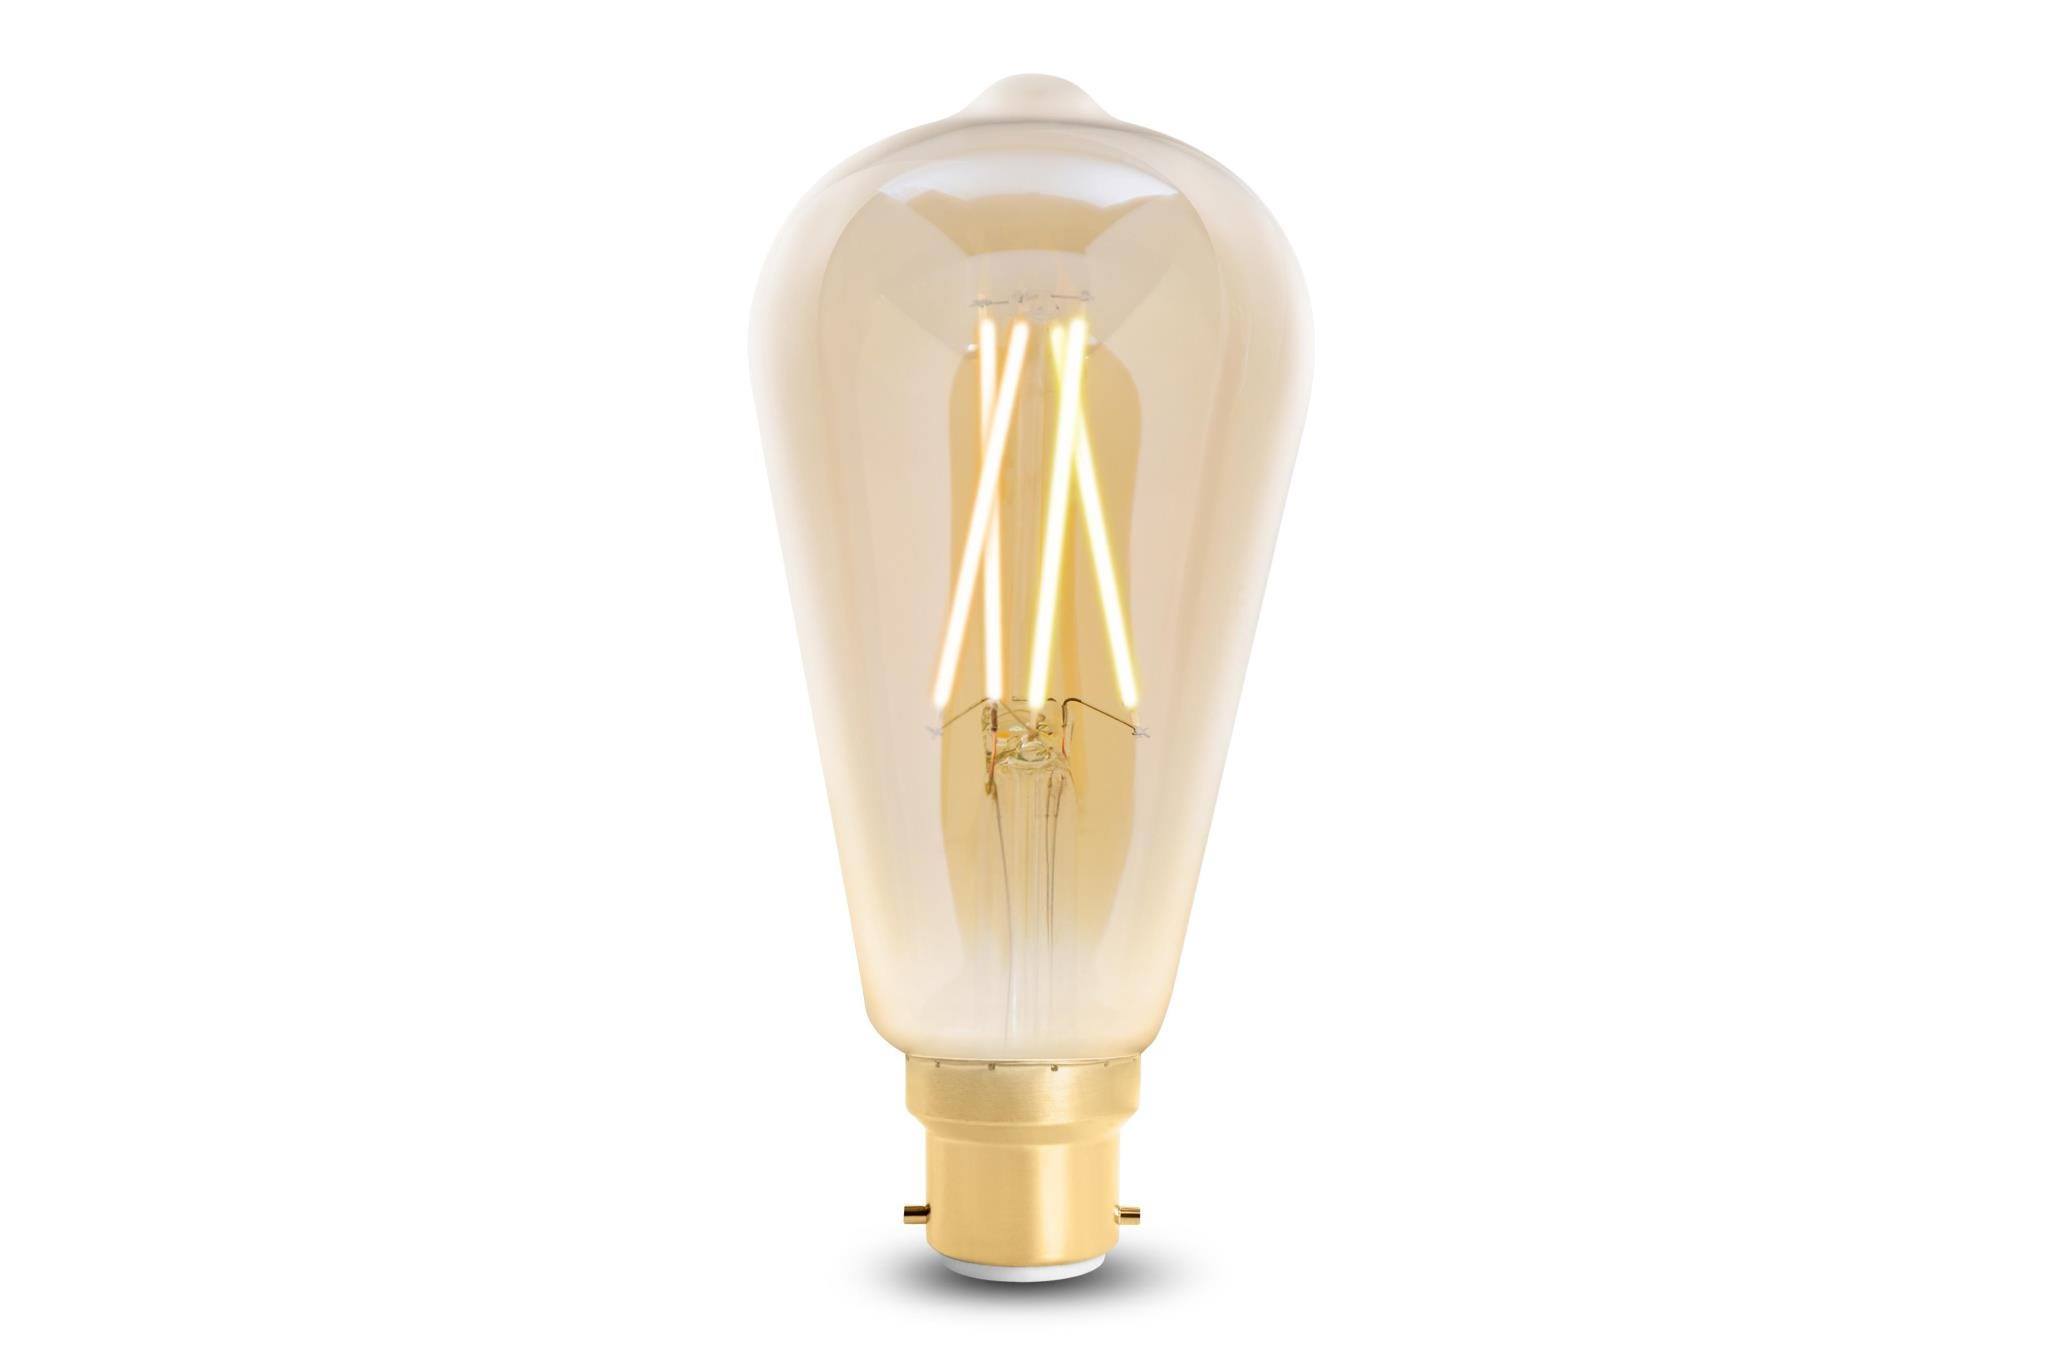 4lite WiZ Connected ST64 Edison Filament LED Smart Bulb Amber White Dimmable WiFi  - B22 Bayonet